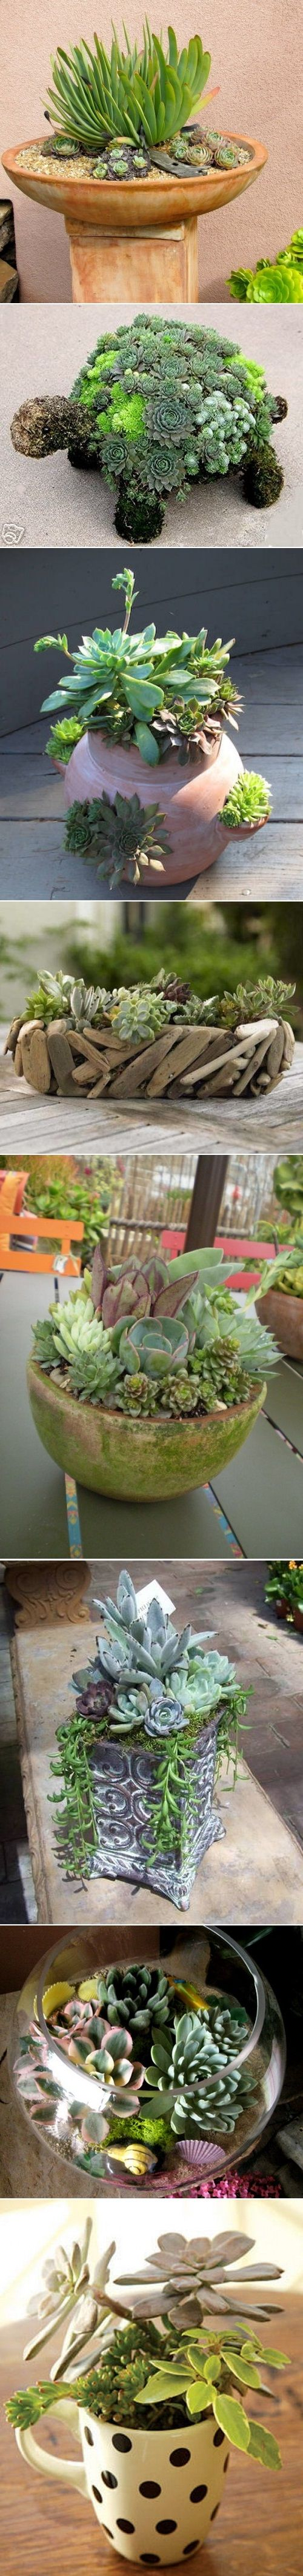 balenciaga 12 DIY Succulent Garden Ideas  Gardening Tutorials for landscaping gro